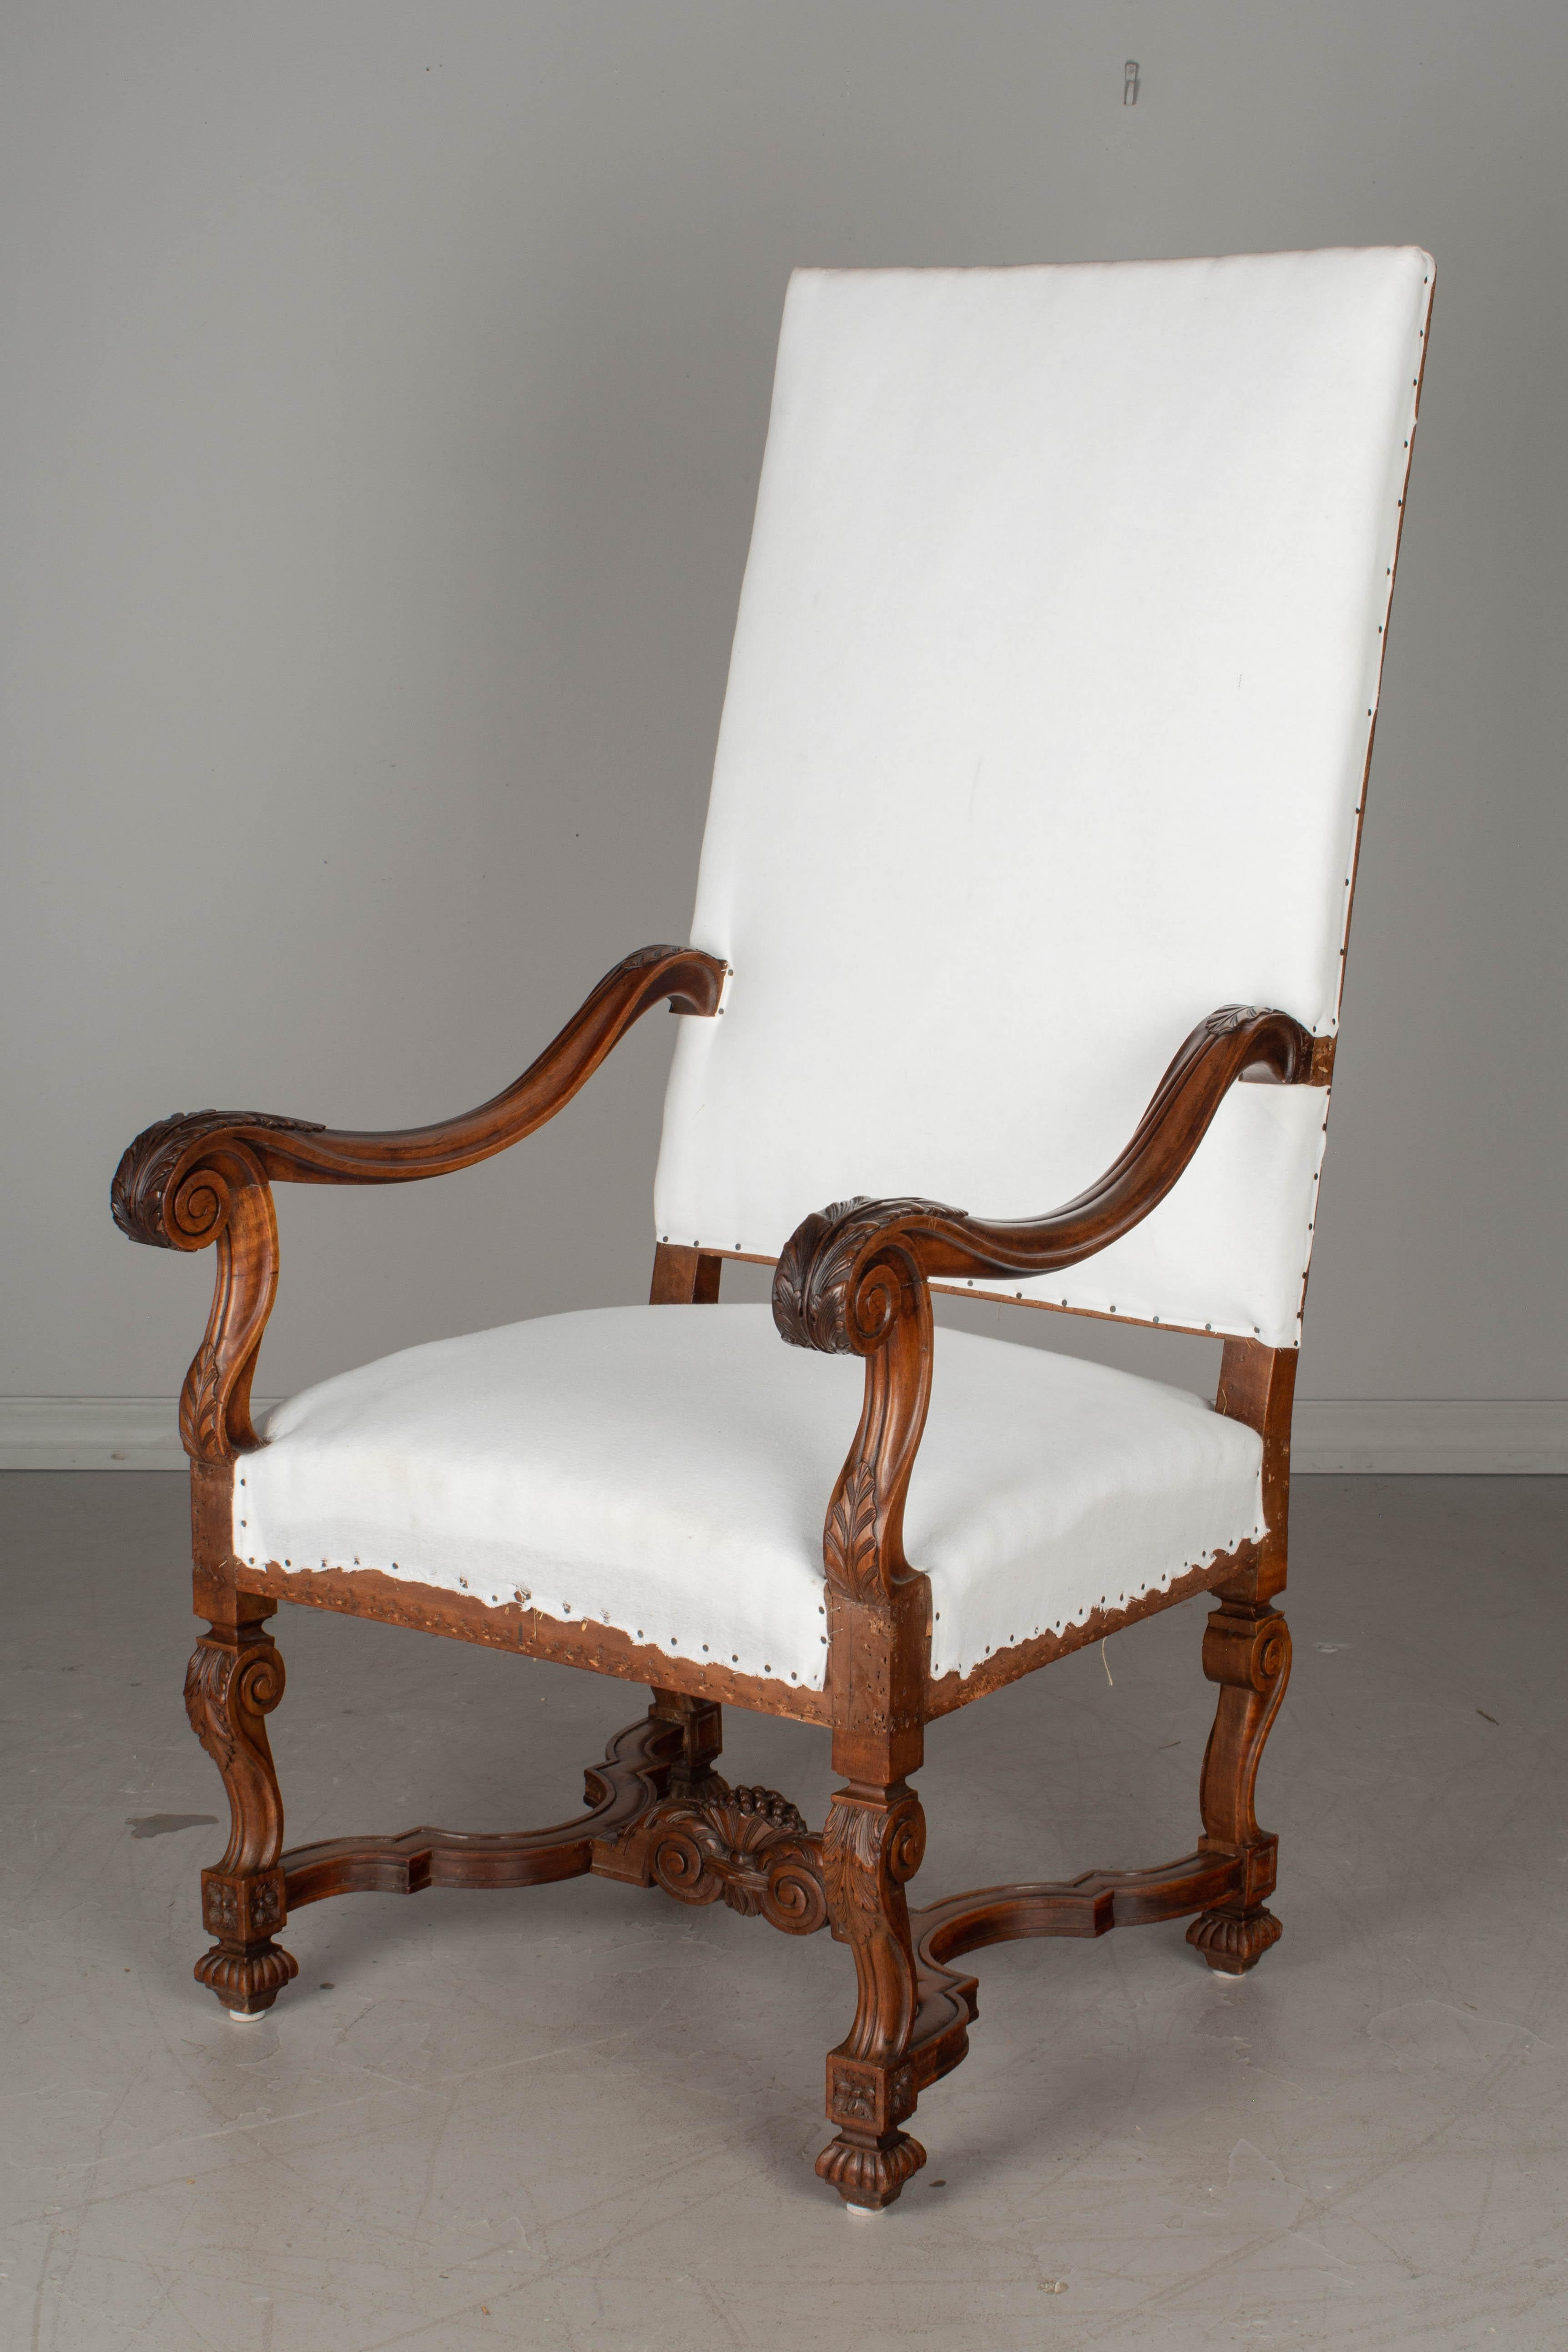 19th Century Louis Xiii Style Fauteuil Or Armchair For Sale At 1stdibs